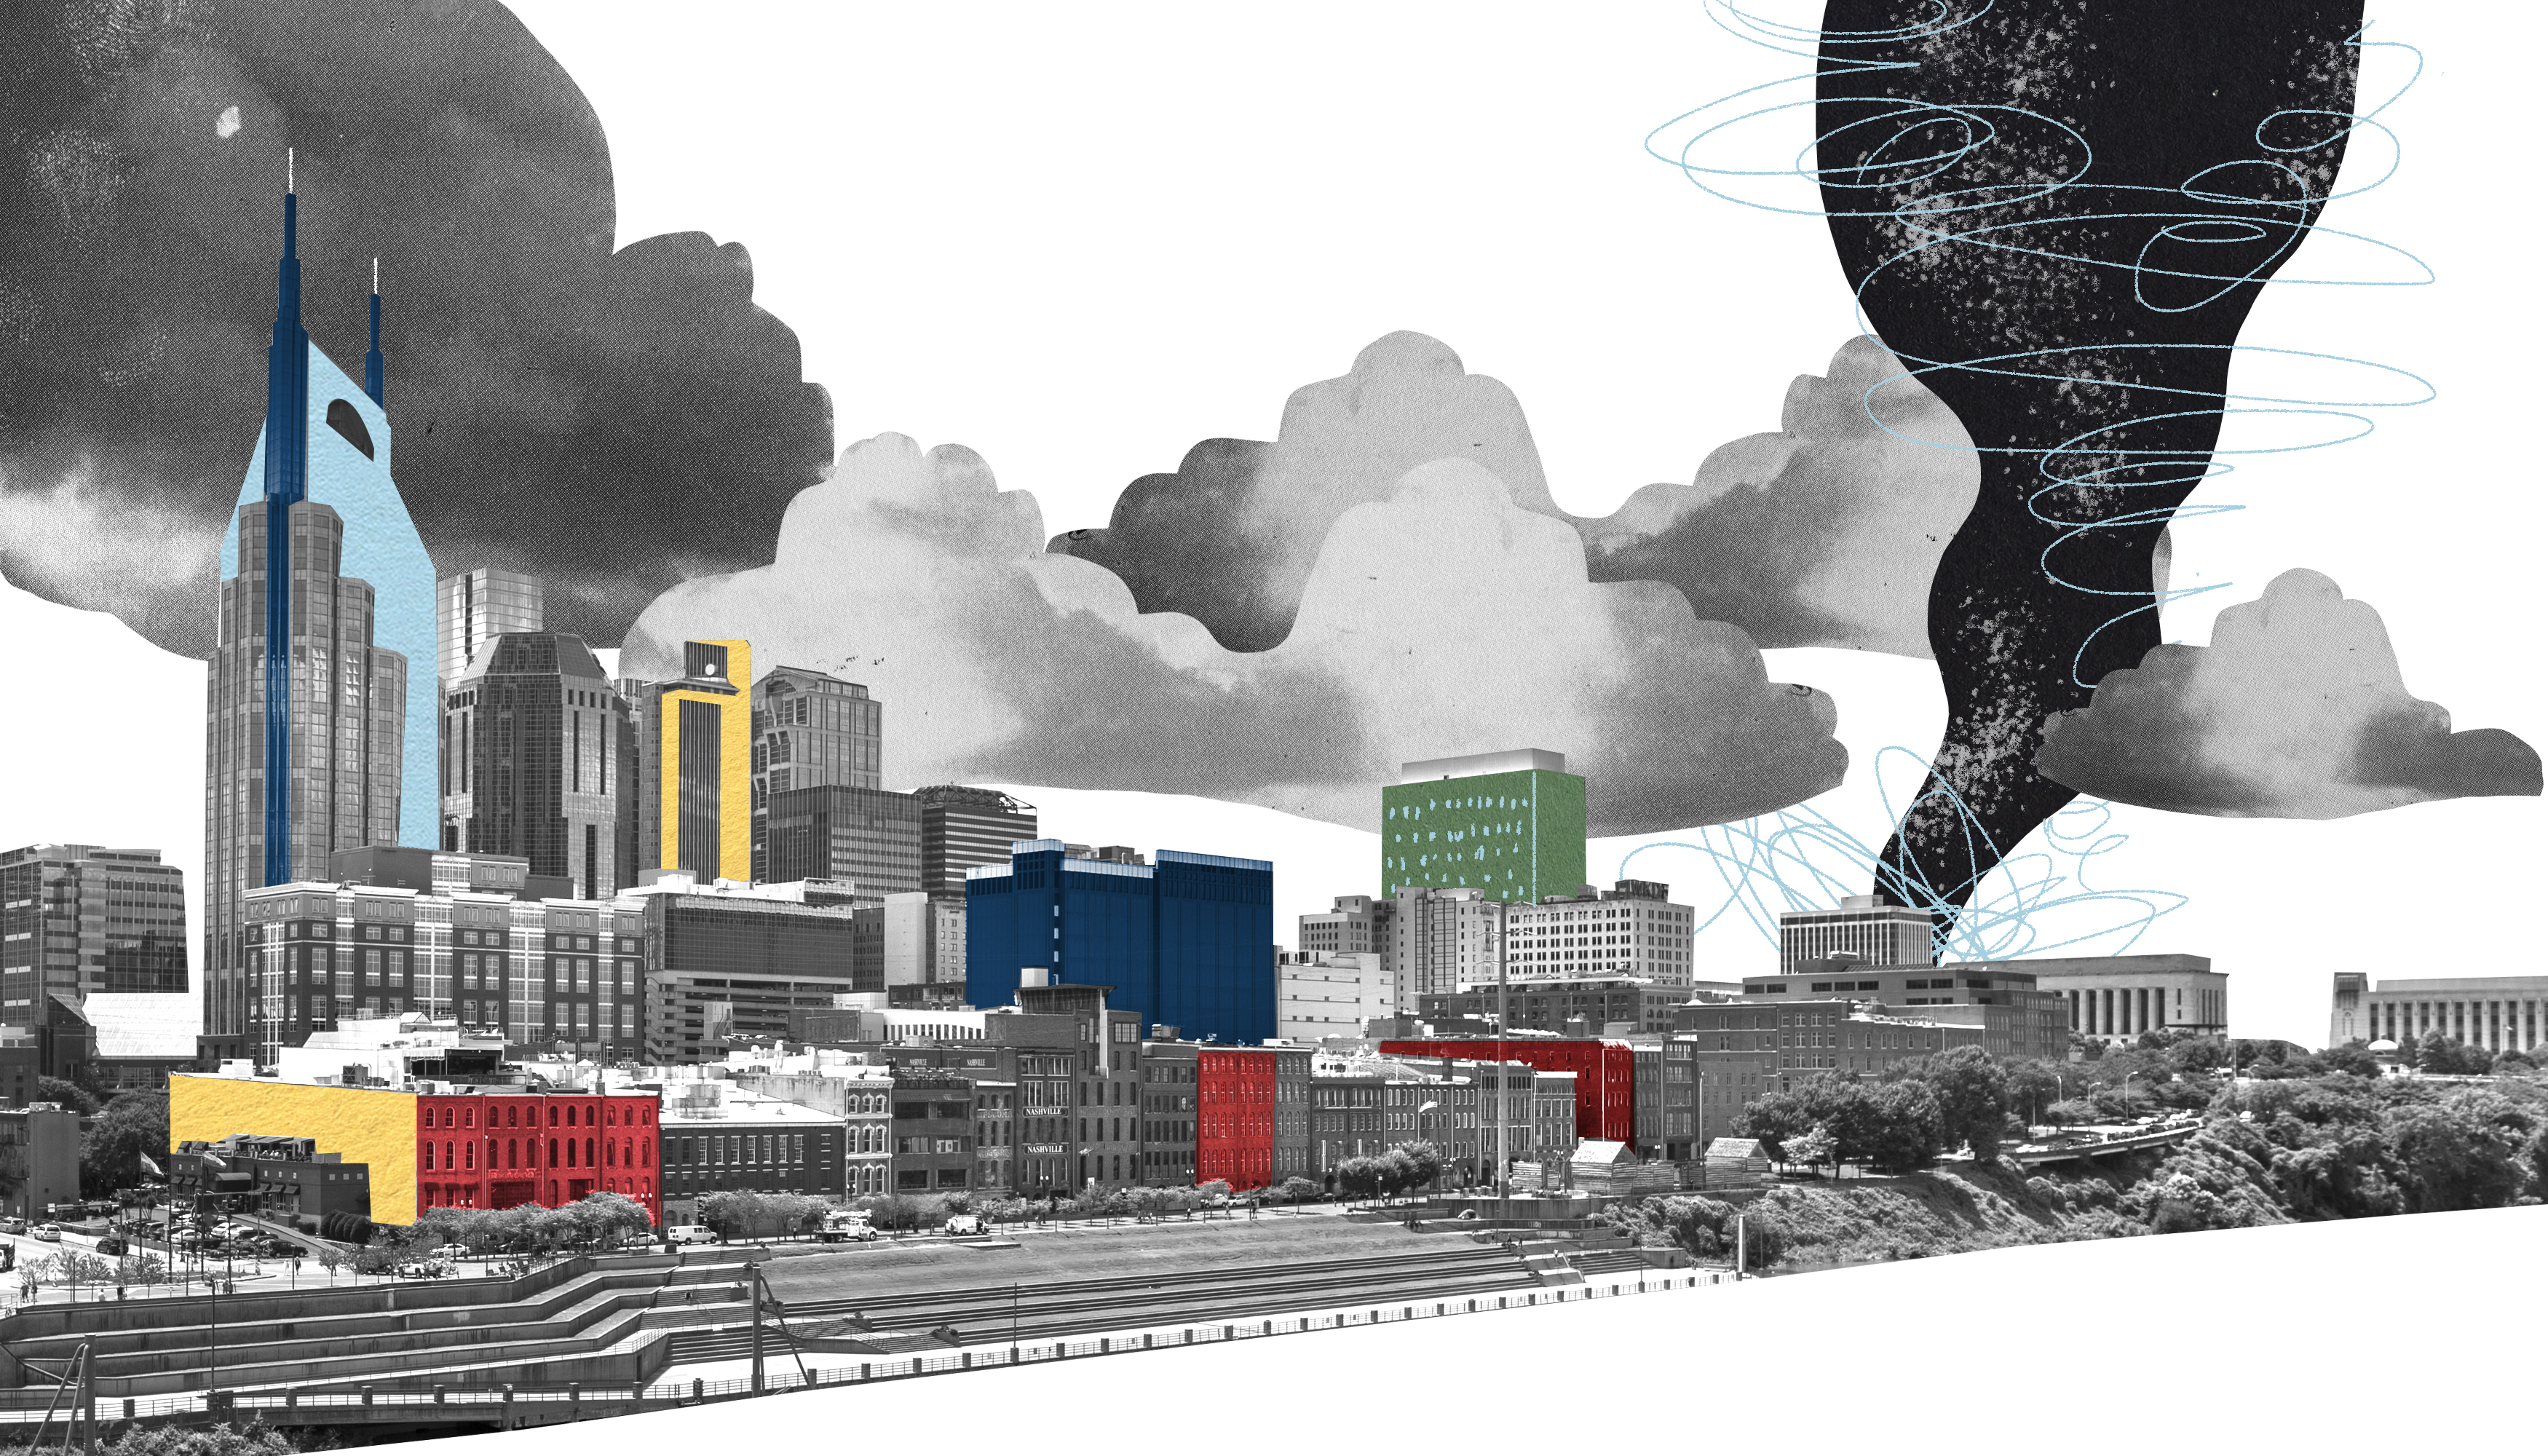 A tornado looms in the distance of a Nashville skyline. Collage/Illustration.